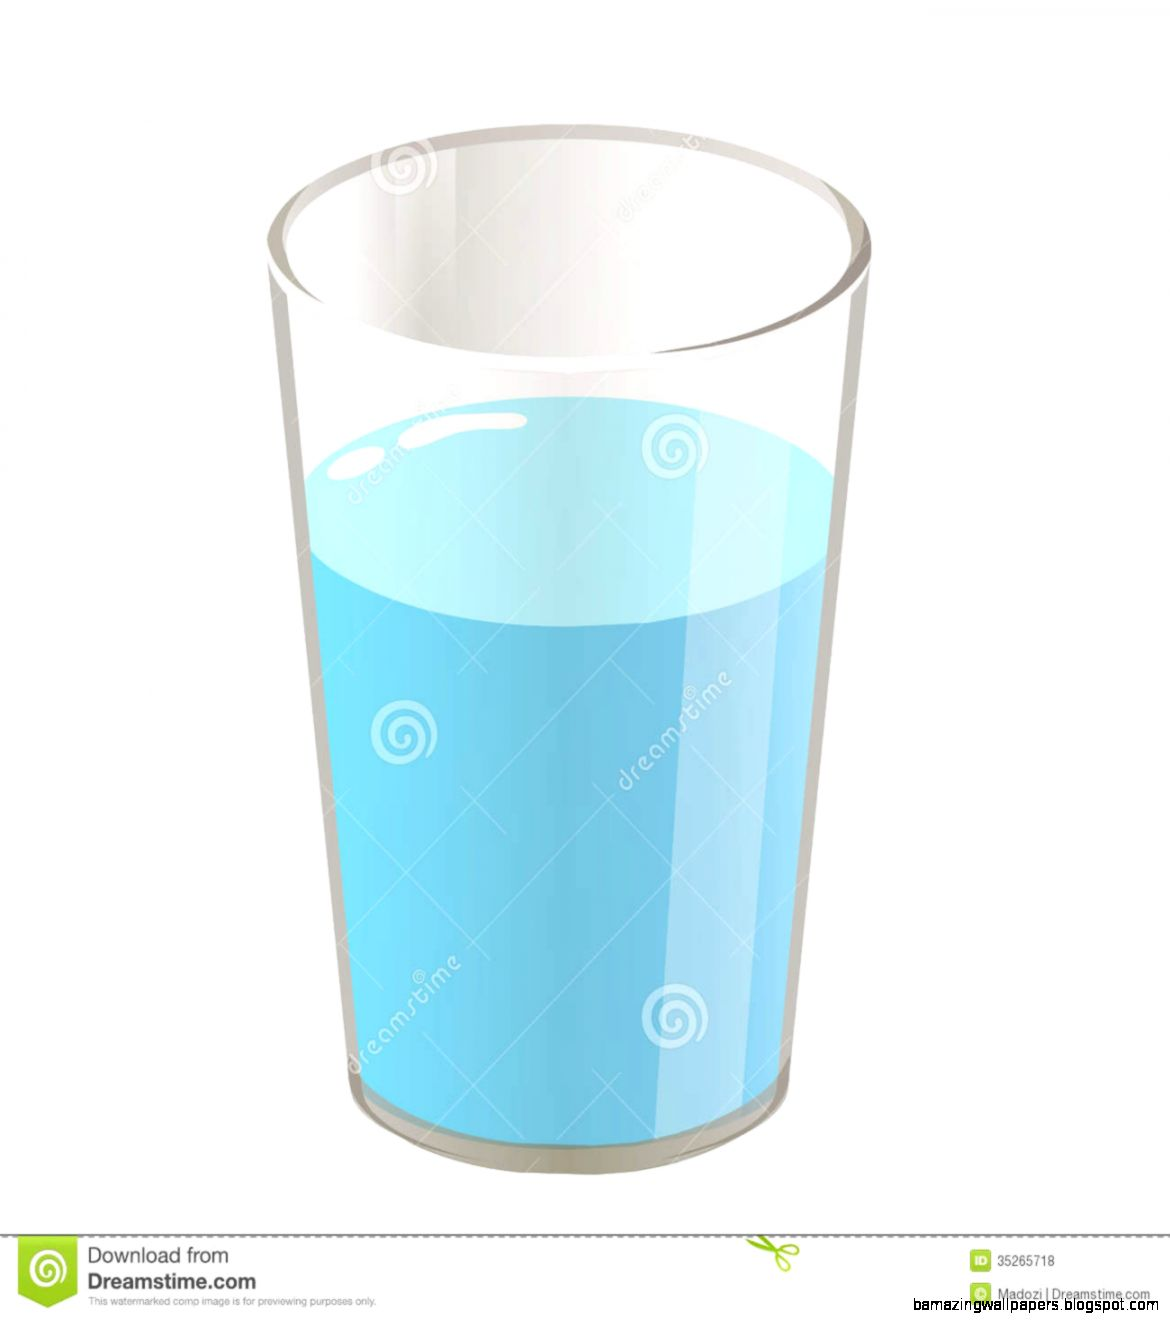 glass of water clipart amazing wallpapers rh bamazingwallpapers blogspot com glass of water with straw clipart glass of water with straw clipart